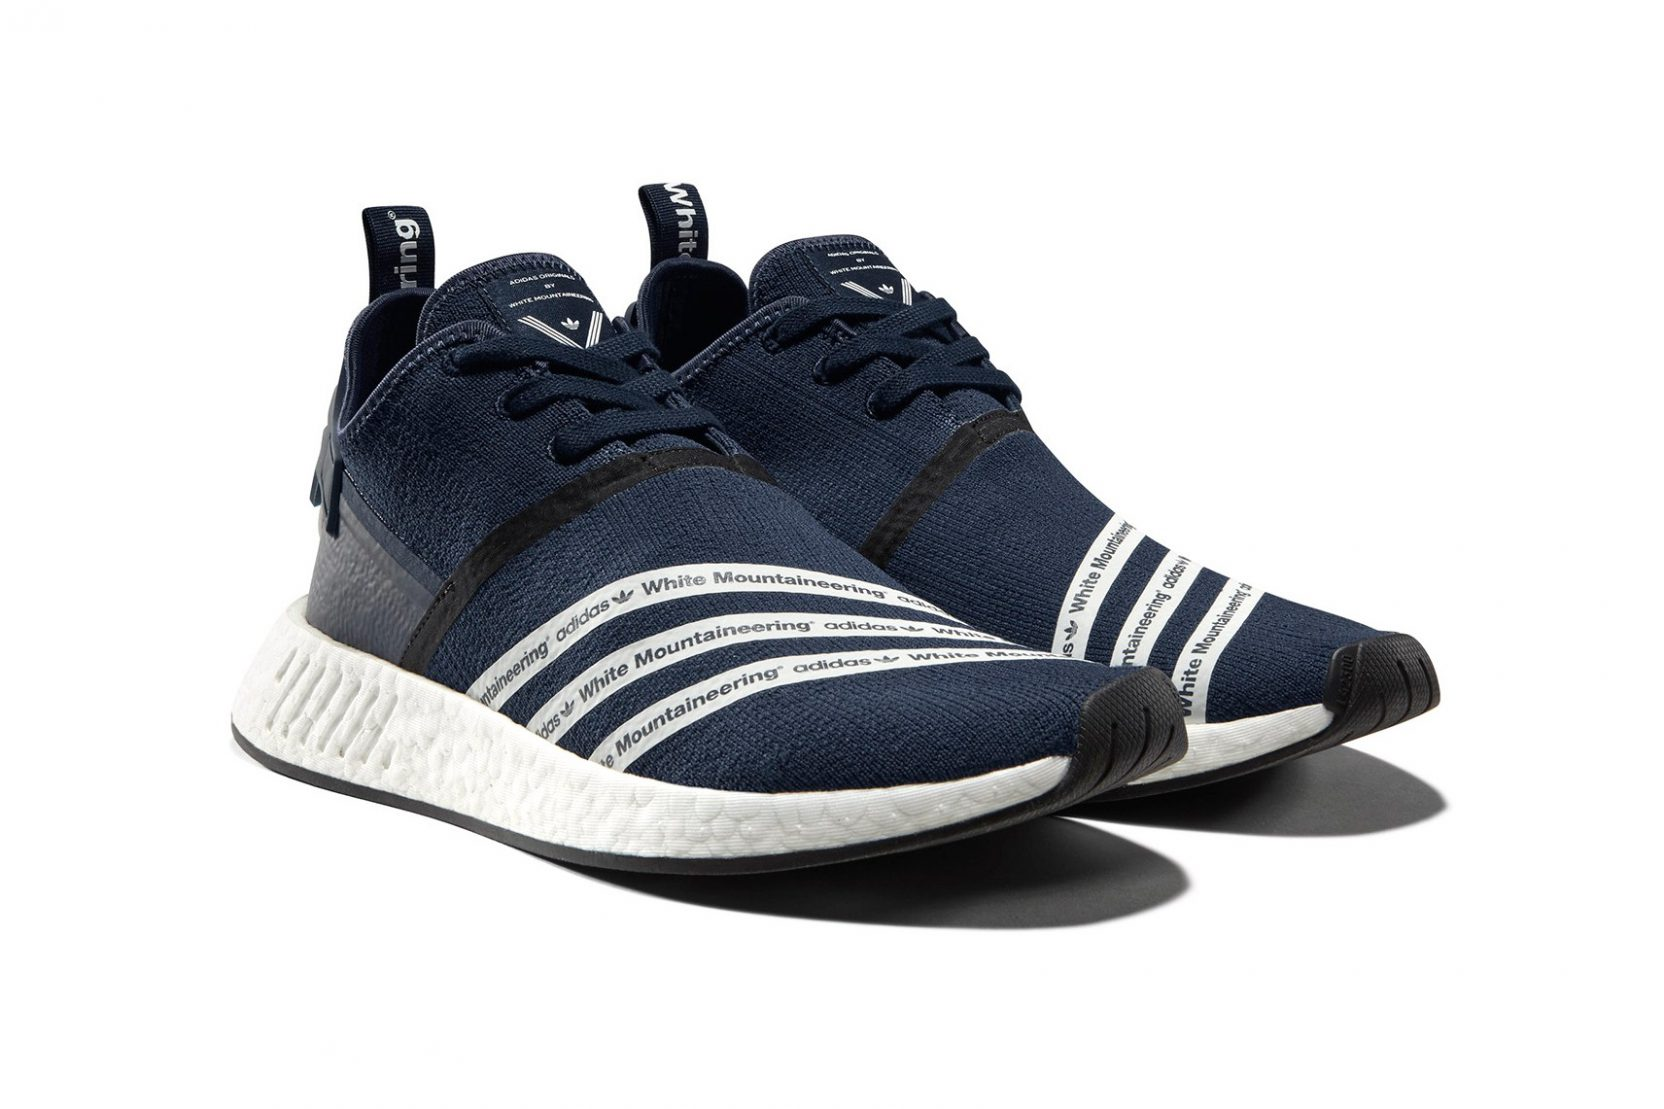 White Mountaineering x Adidas Spring Collection 5